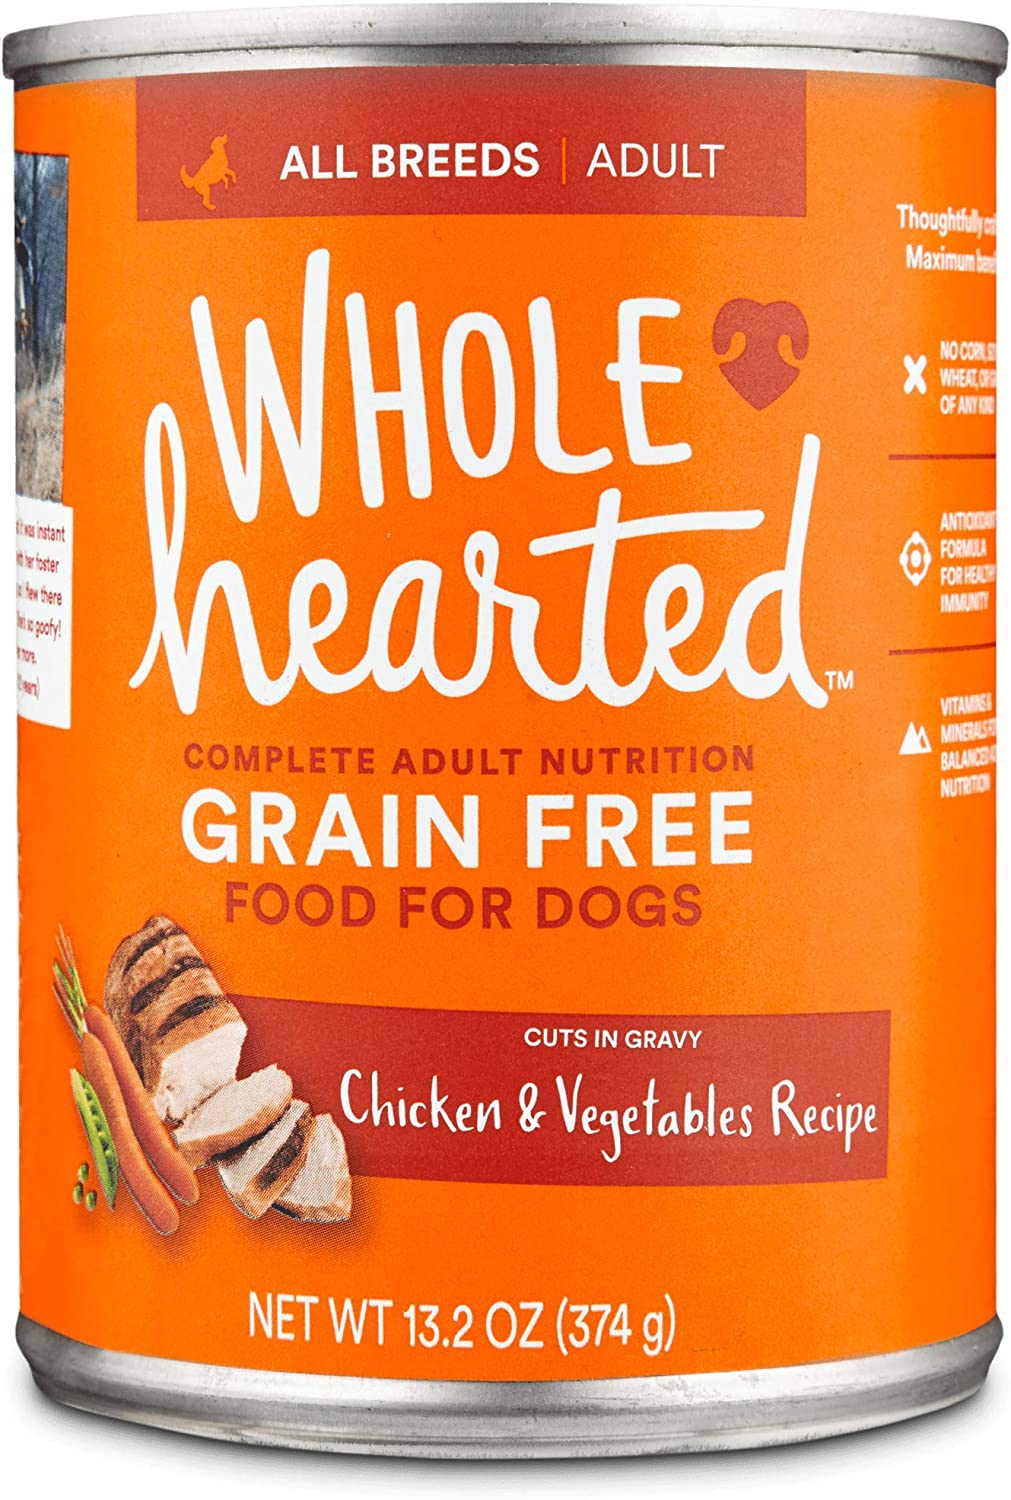 WholeHearted Grain Free Adult Chicken and Vegetable Recipe Wet Dog Food, 13.2 oz., Case of 12, 12 X 13.2 OZ